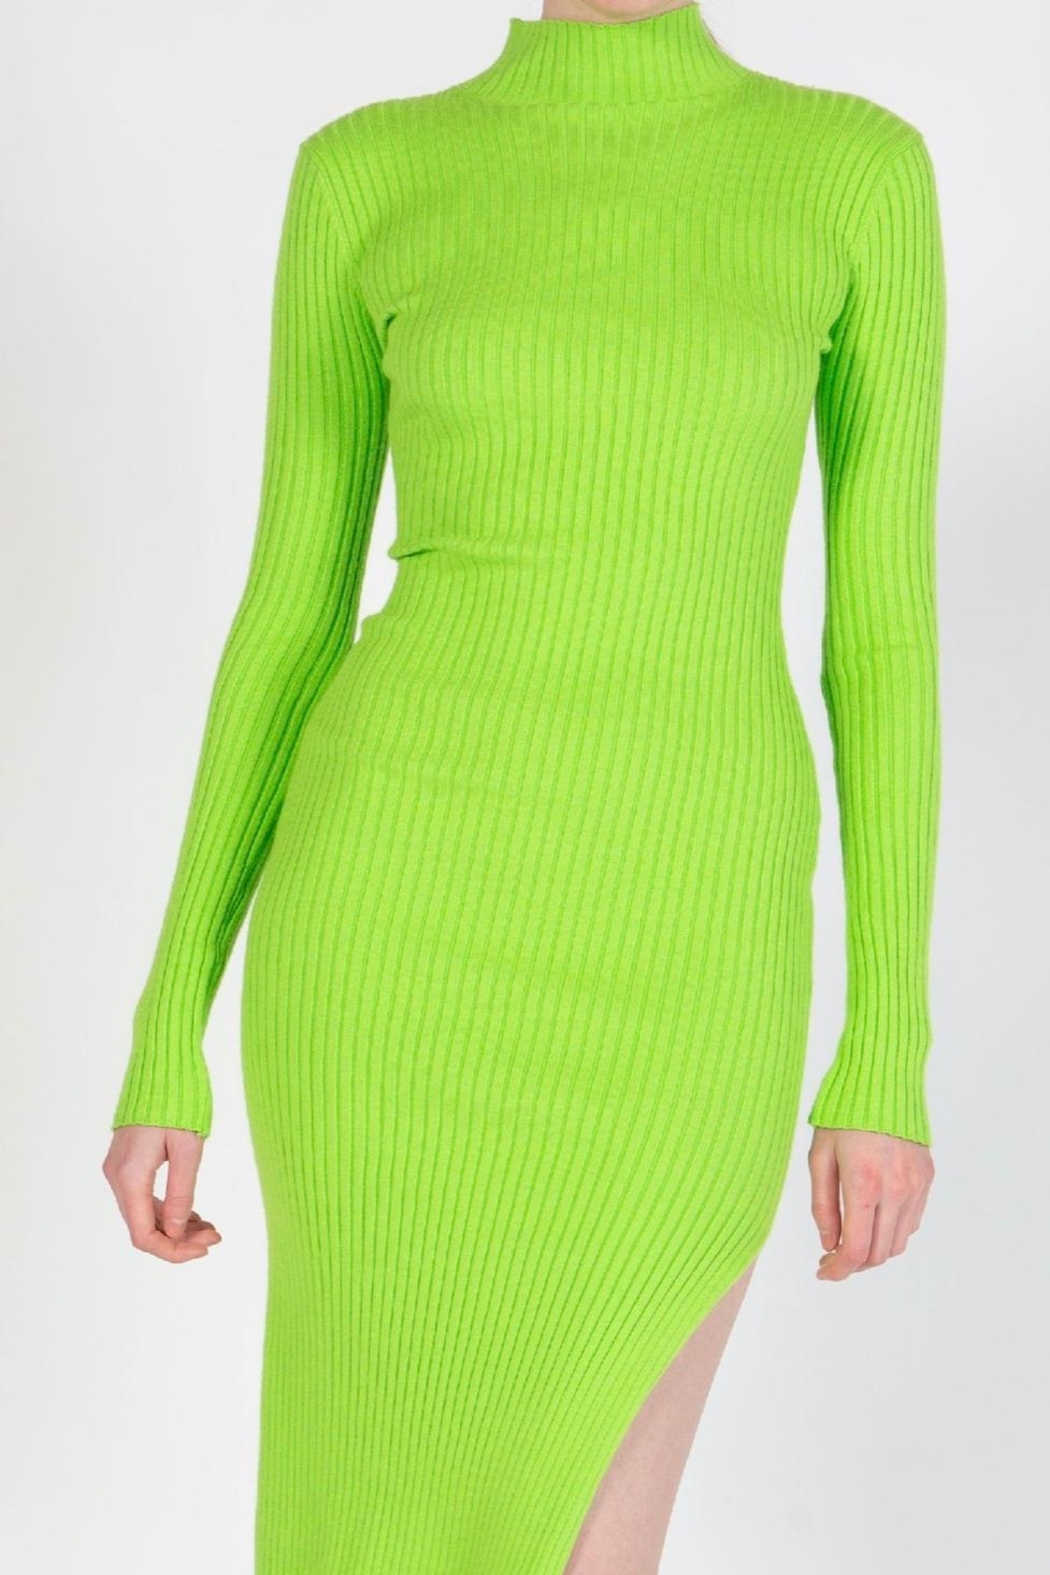 BEULAH STYLE Lime Sweater Dress - Side Cropped Image